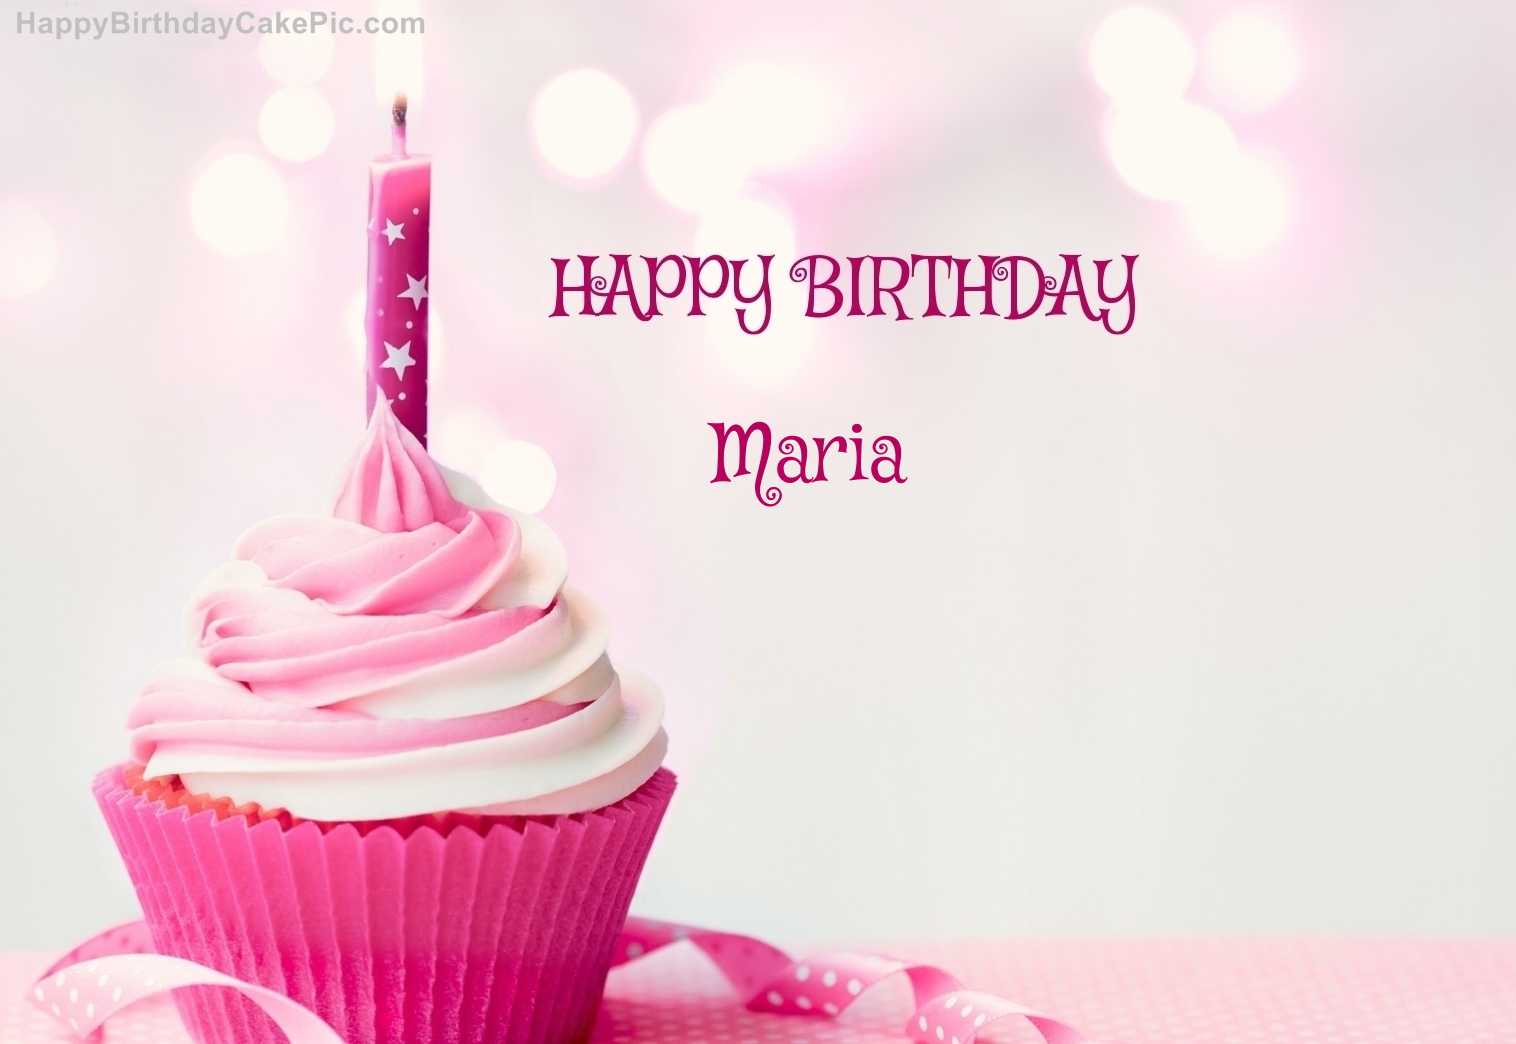 Happy Birthday Cupcake Candle Pink Cake For Maria